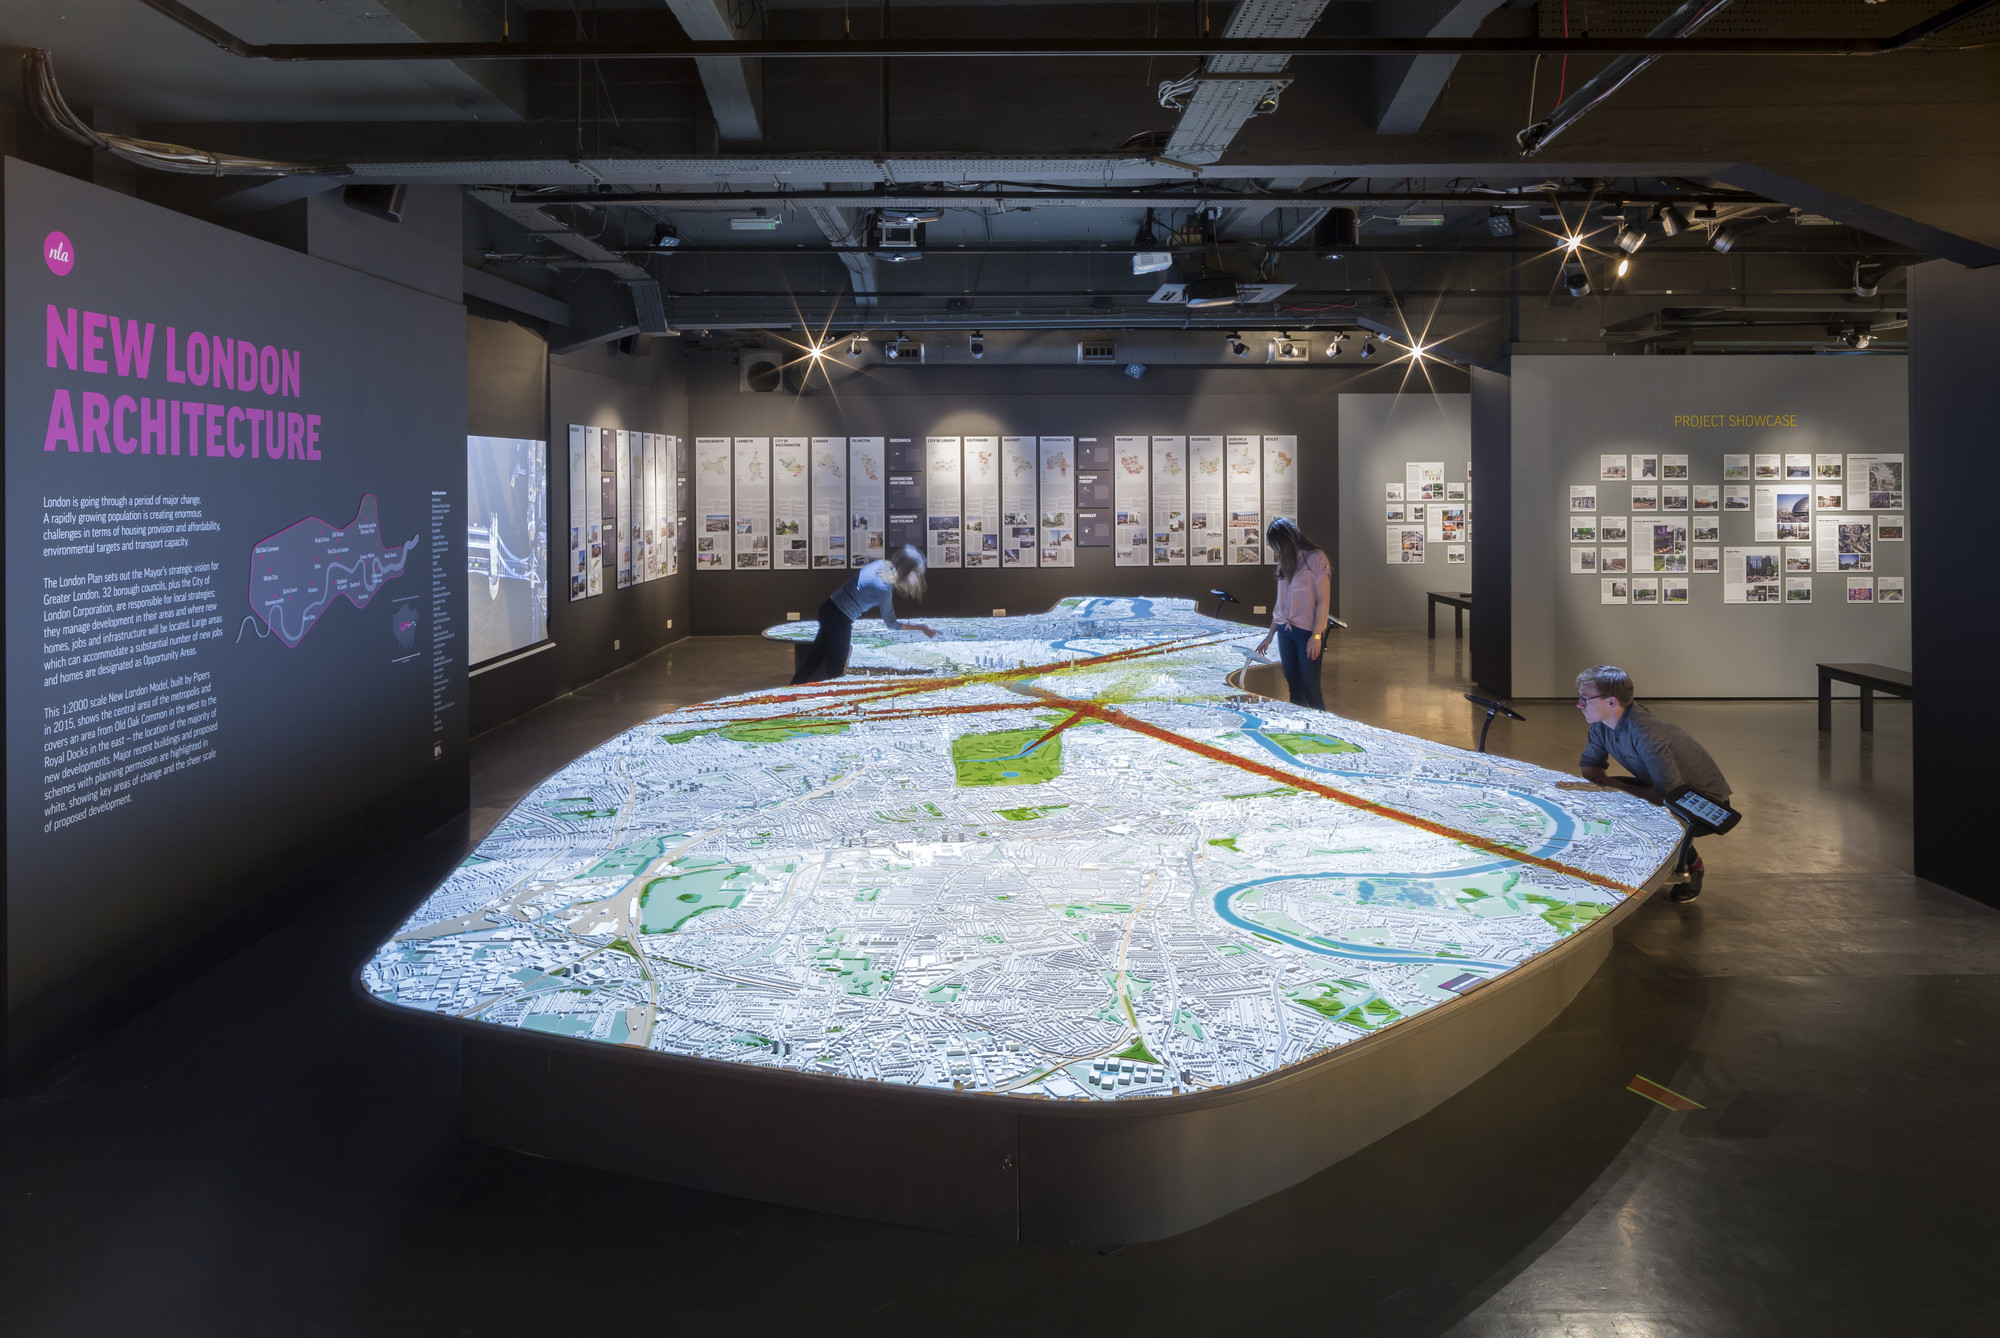 New London Architecture Unveils Updated 1:2000 Scale Model Of The UK Capital, © Paul Raftery